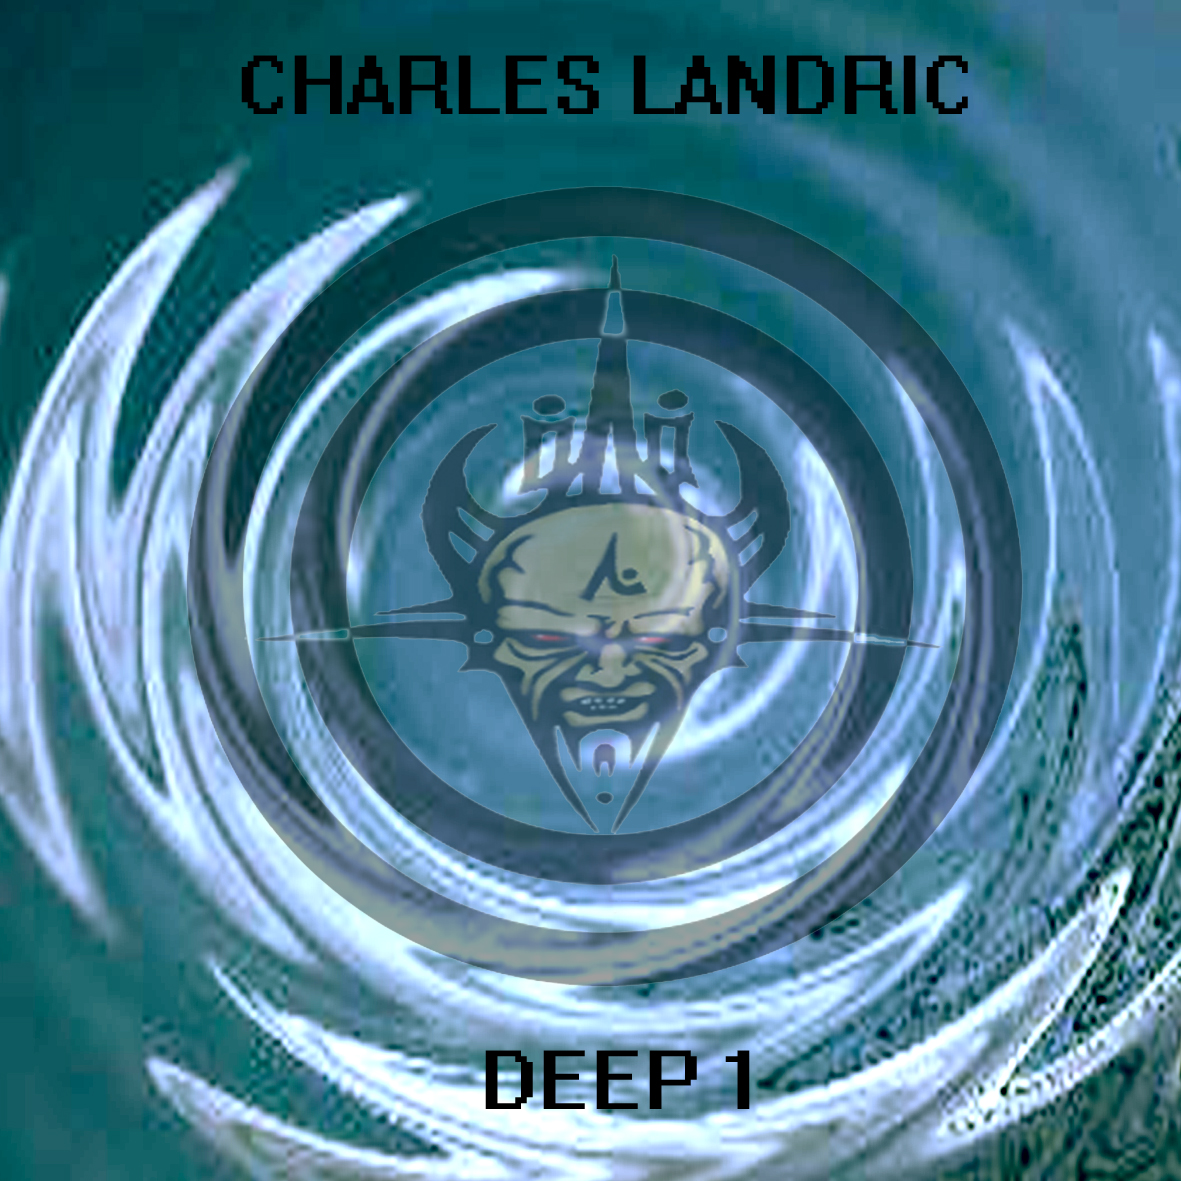 MP3CCREATDF001 - CORE CREATOR DIGIFILES - CHARLES LANDRIC - Deep 01